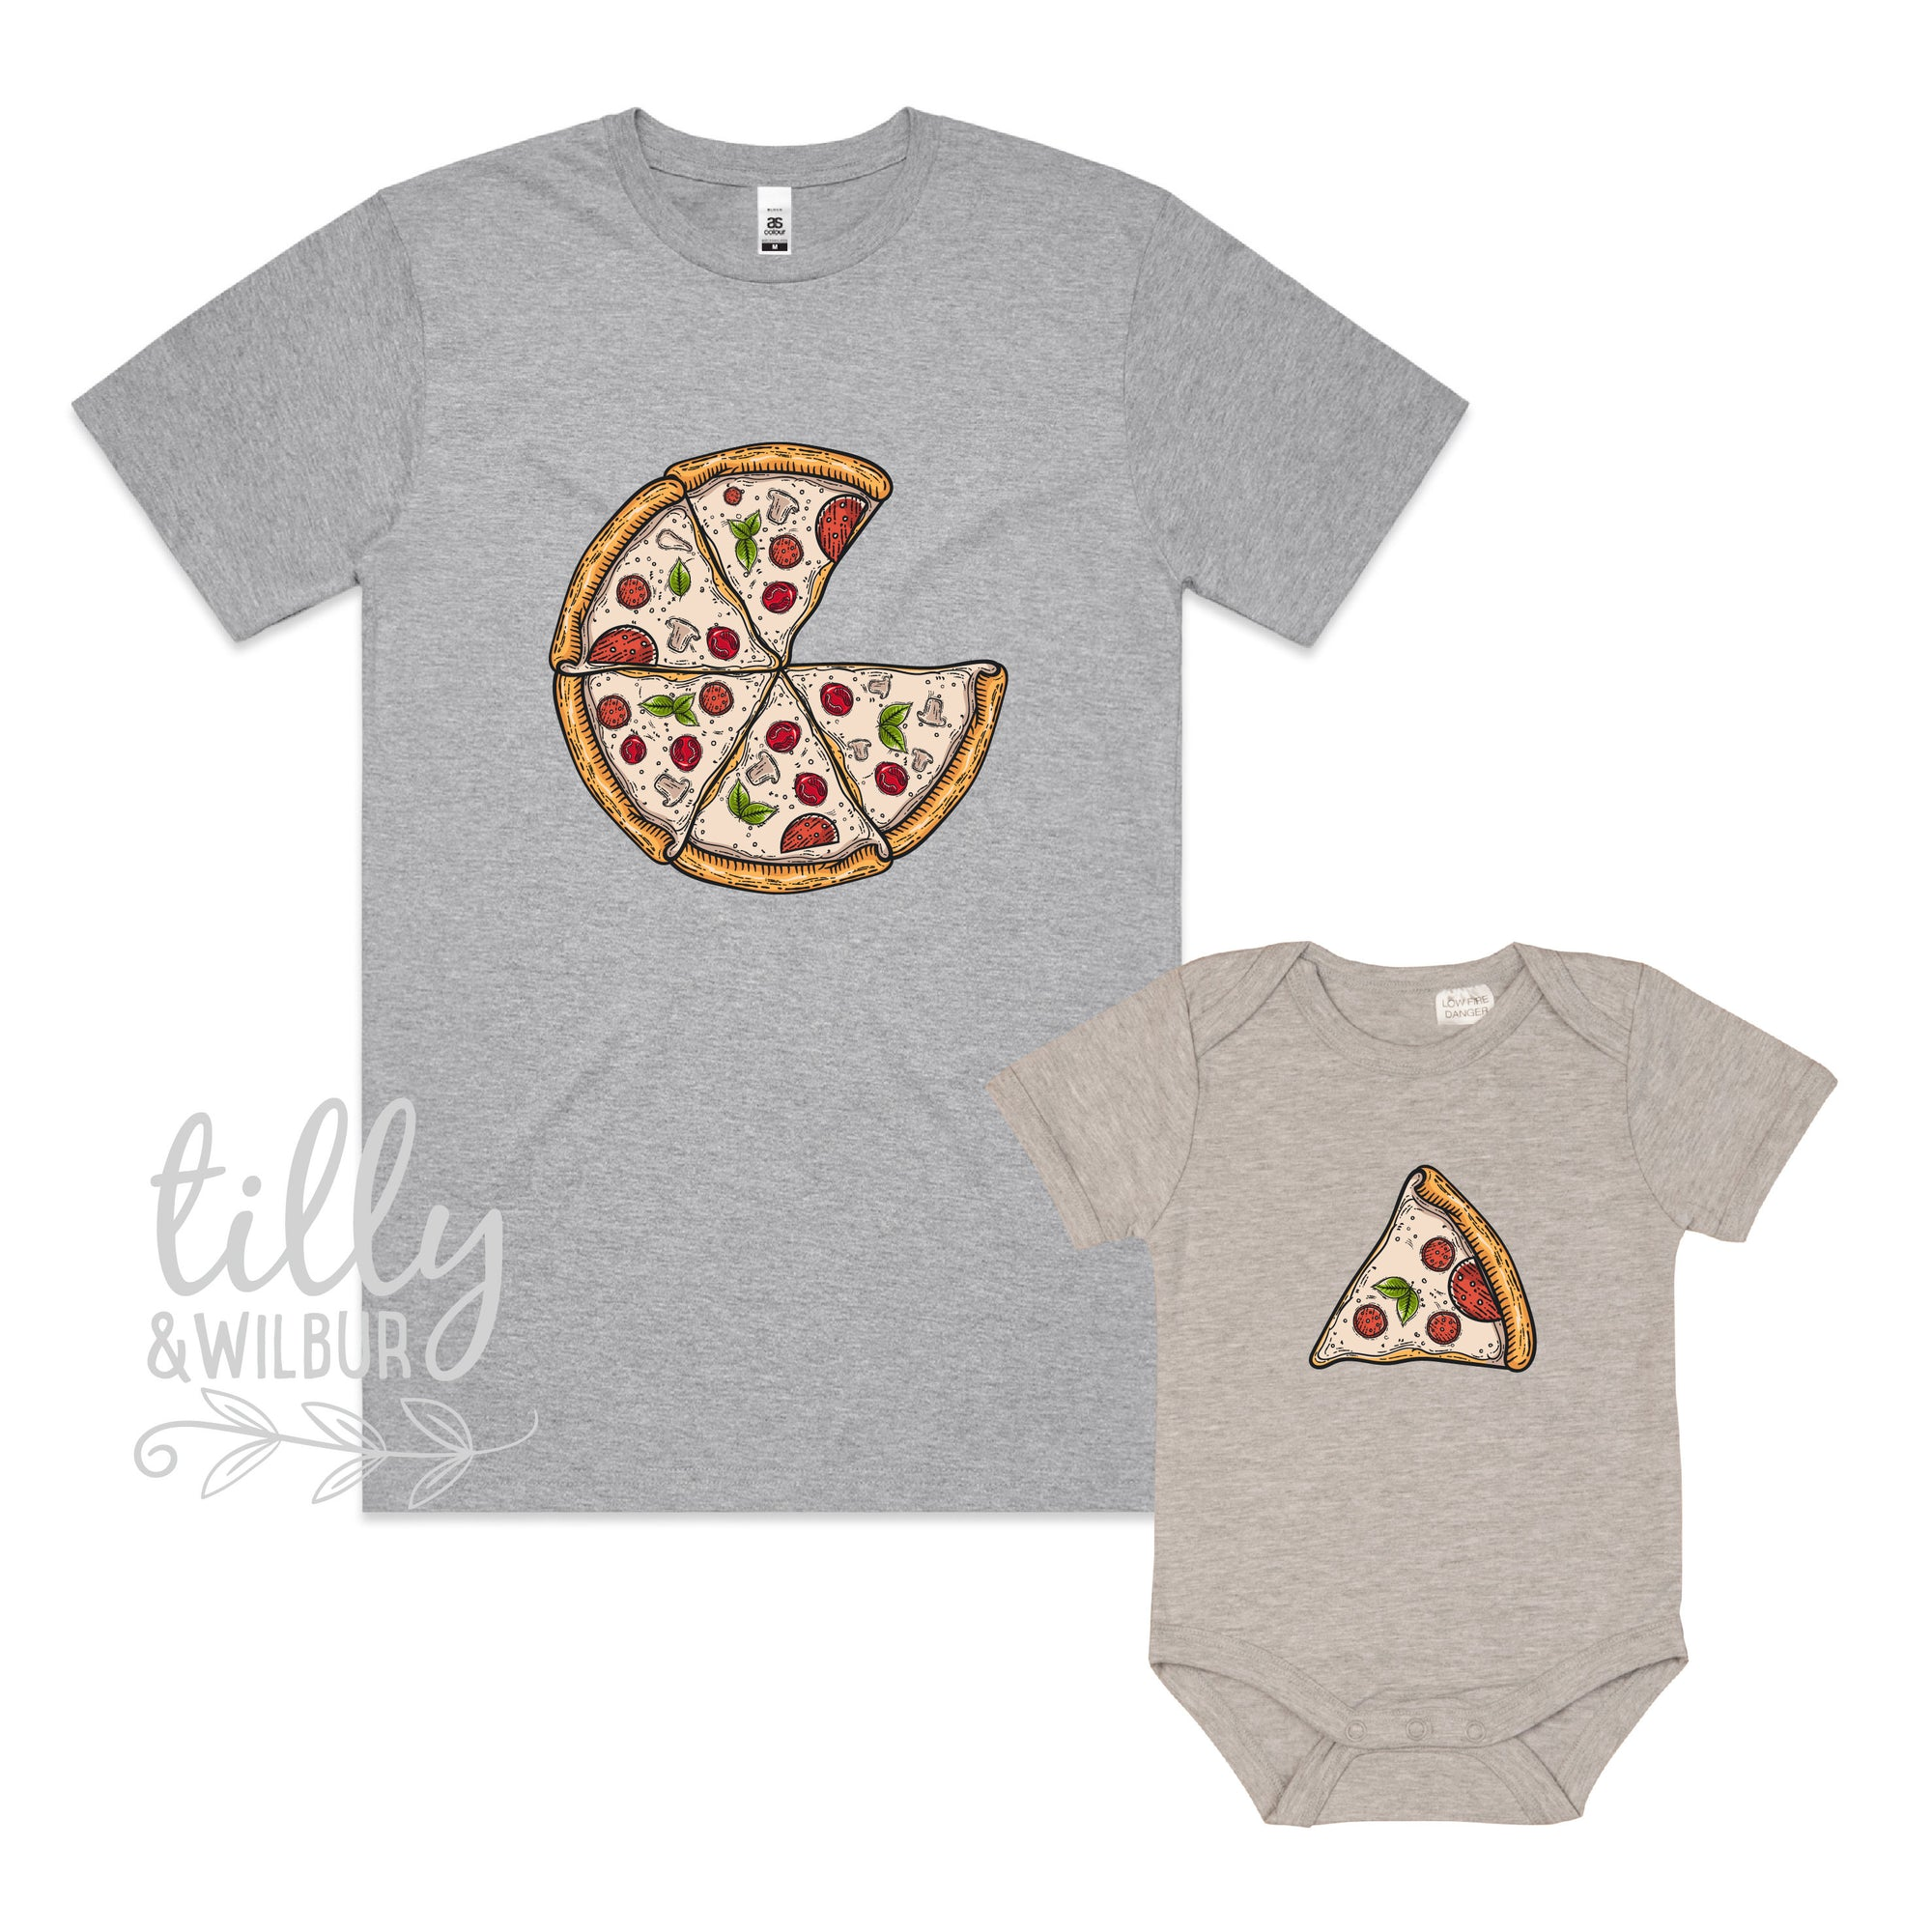 Father Son Pizza T-Shirt, Daddy Daughter Pizza T-Shirts, Matching Pizza Outfits, Matchy Matchy, Whole Pizza One Slice Matching, Pizza Set